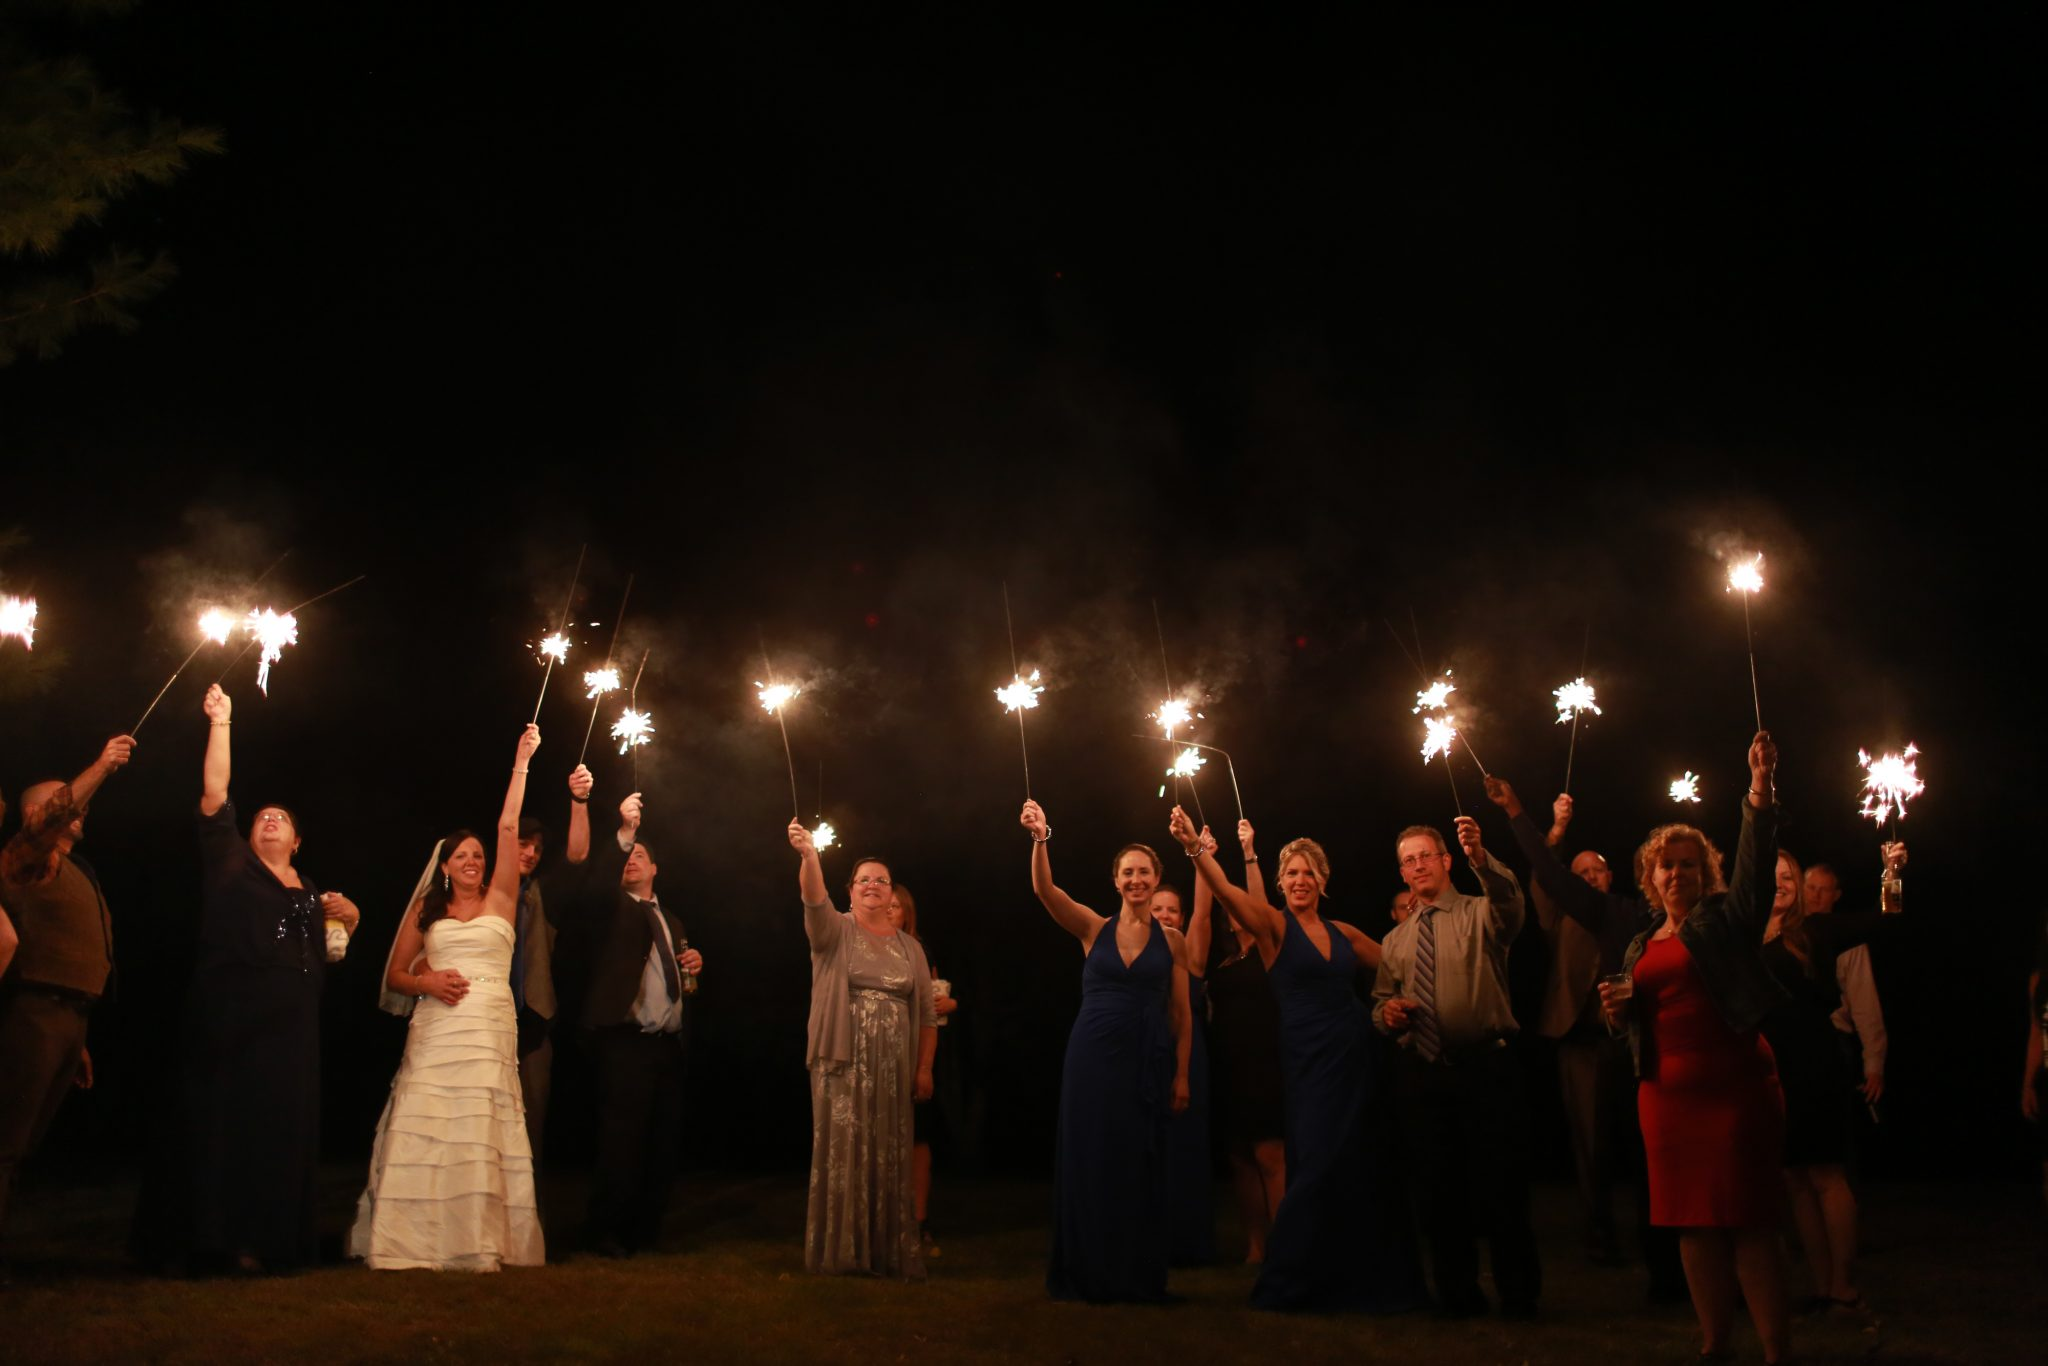 A sparkling wedding finale at OA